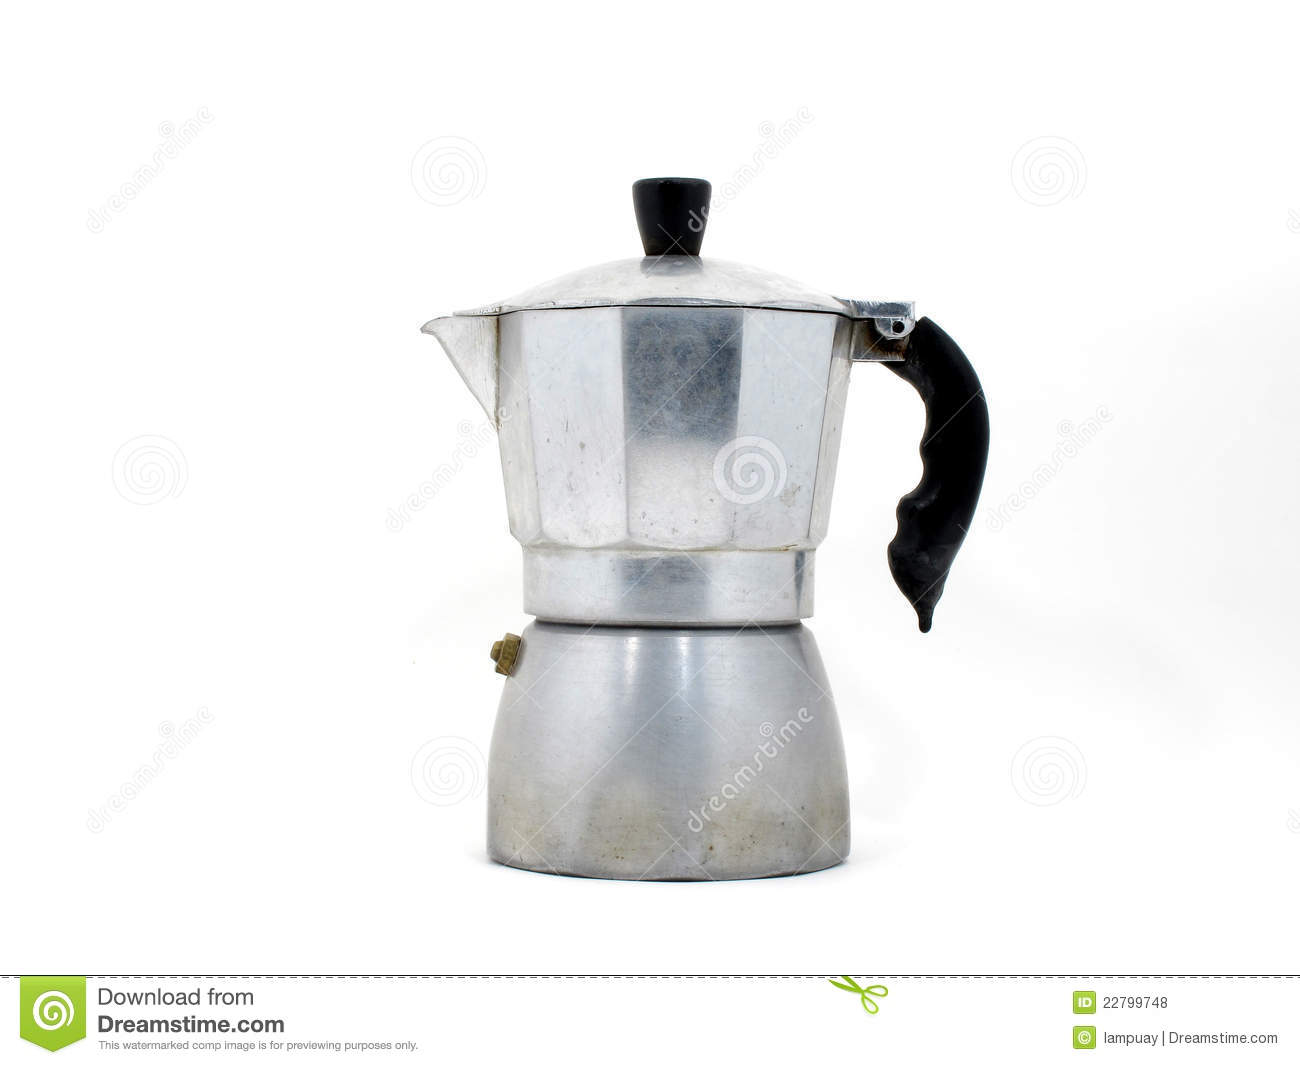 Italian Coffee Maker Stuck : Italian Coffee Maker (moka Pot) Royalty Free Stock Photos - Image: 22799748